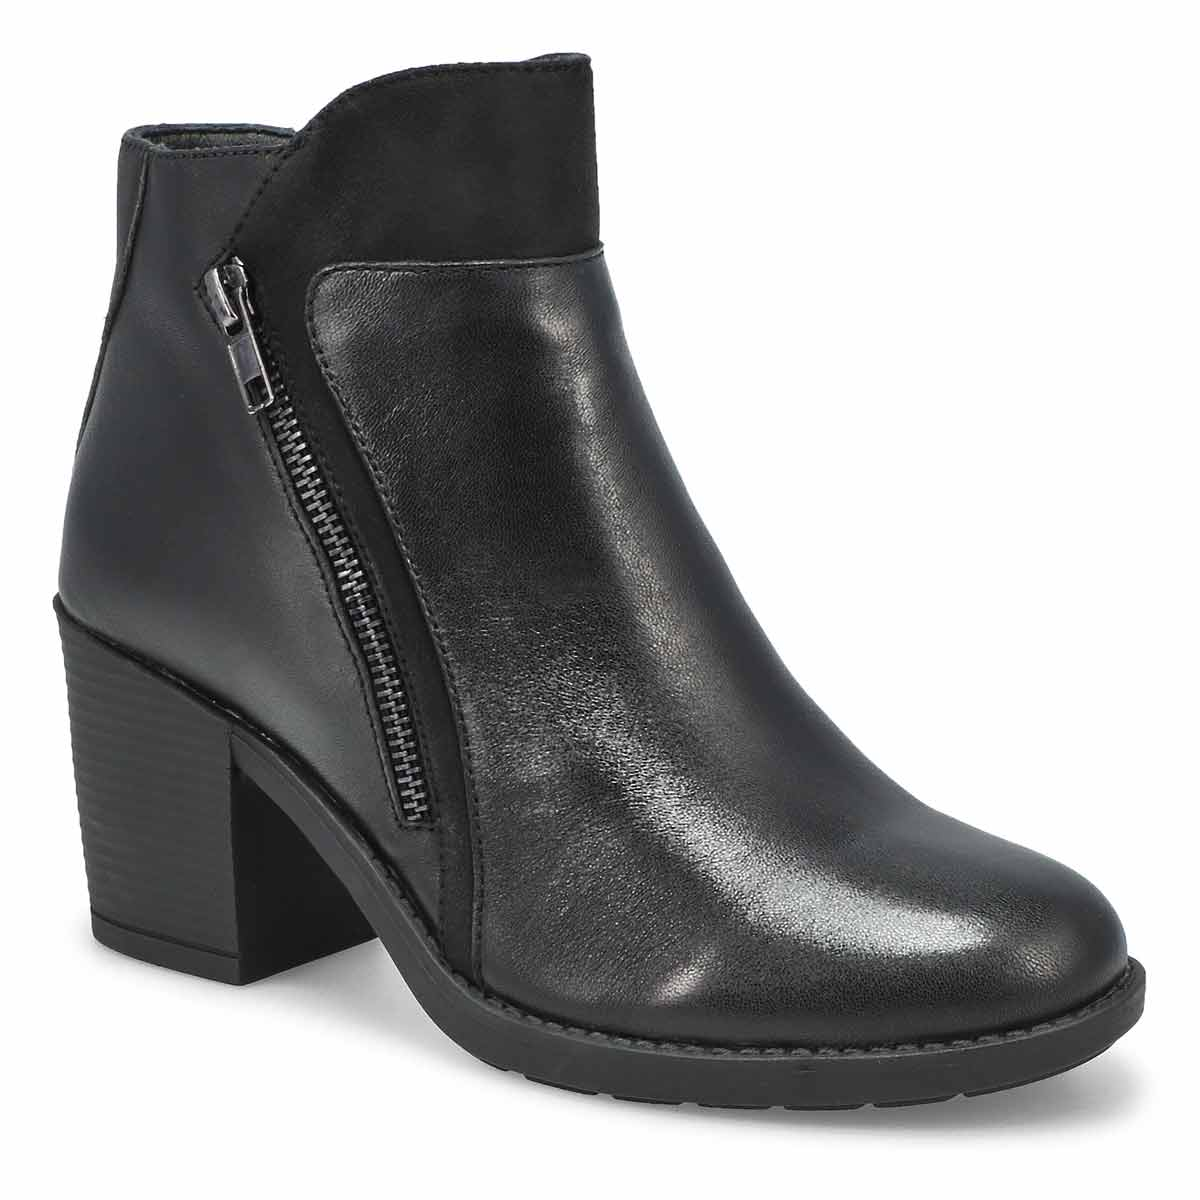 Women's DAISEY black casual ankle boots